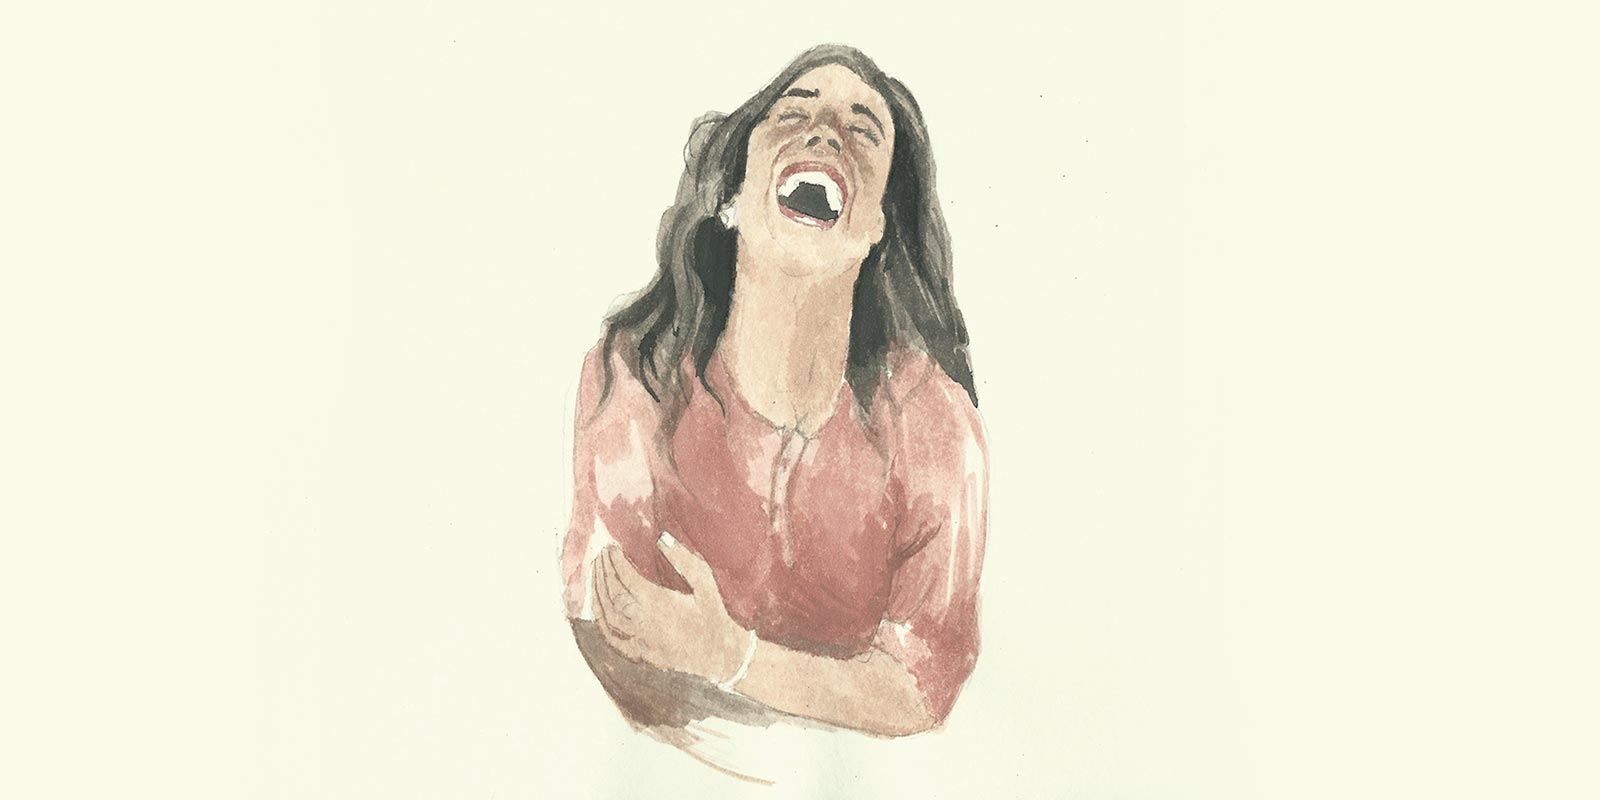 Bani Abidi, ...and they died laughing, 2016. Water colour on paper. From the exhibition  They Died Laughing . Image taken from the Hadara Magazine website.